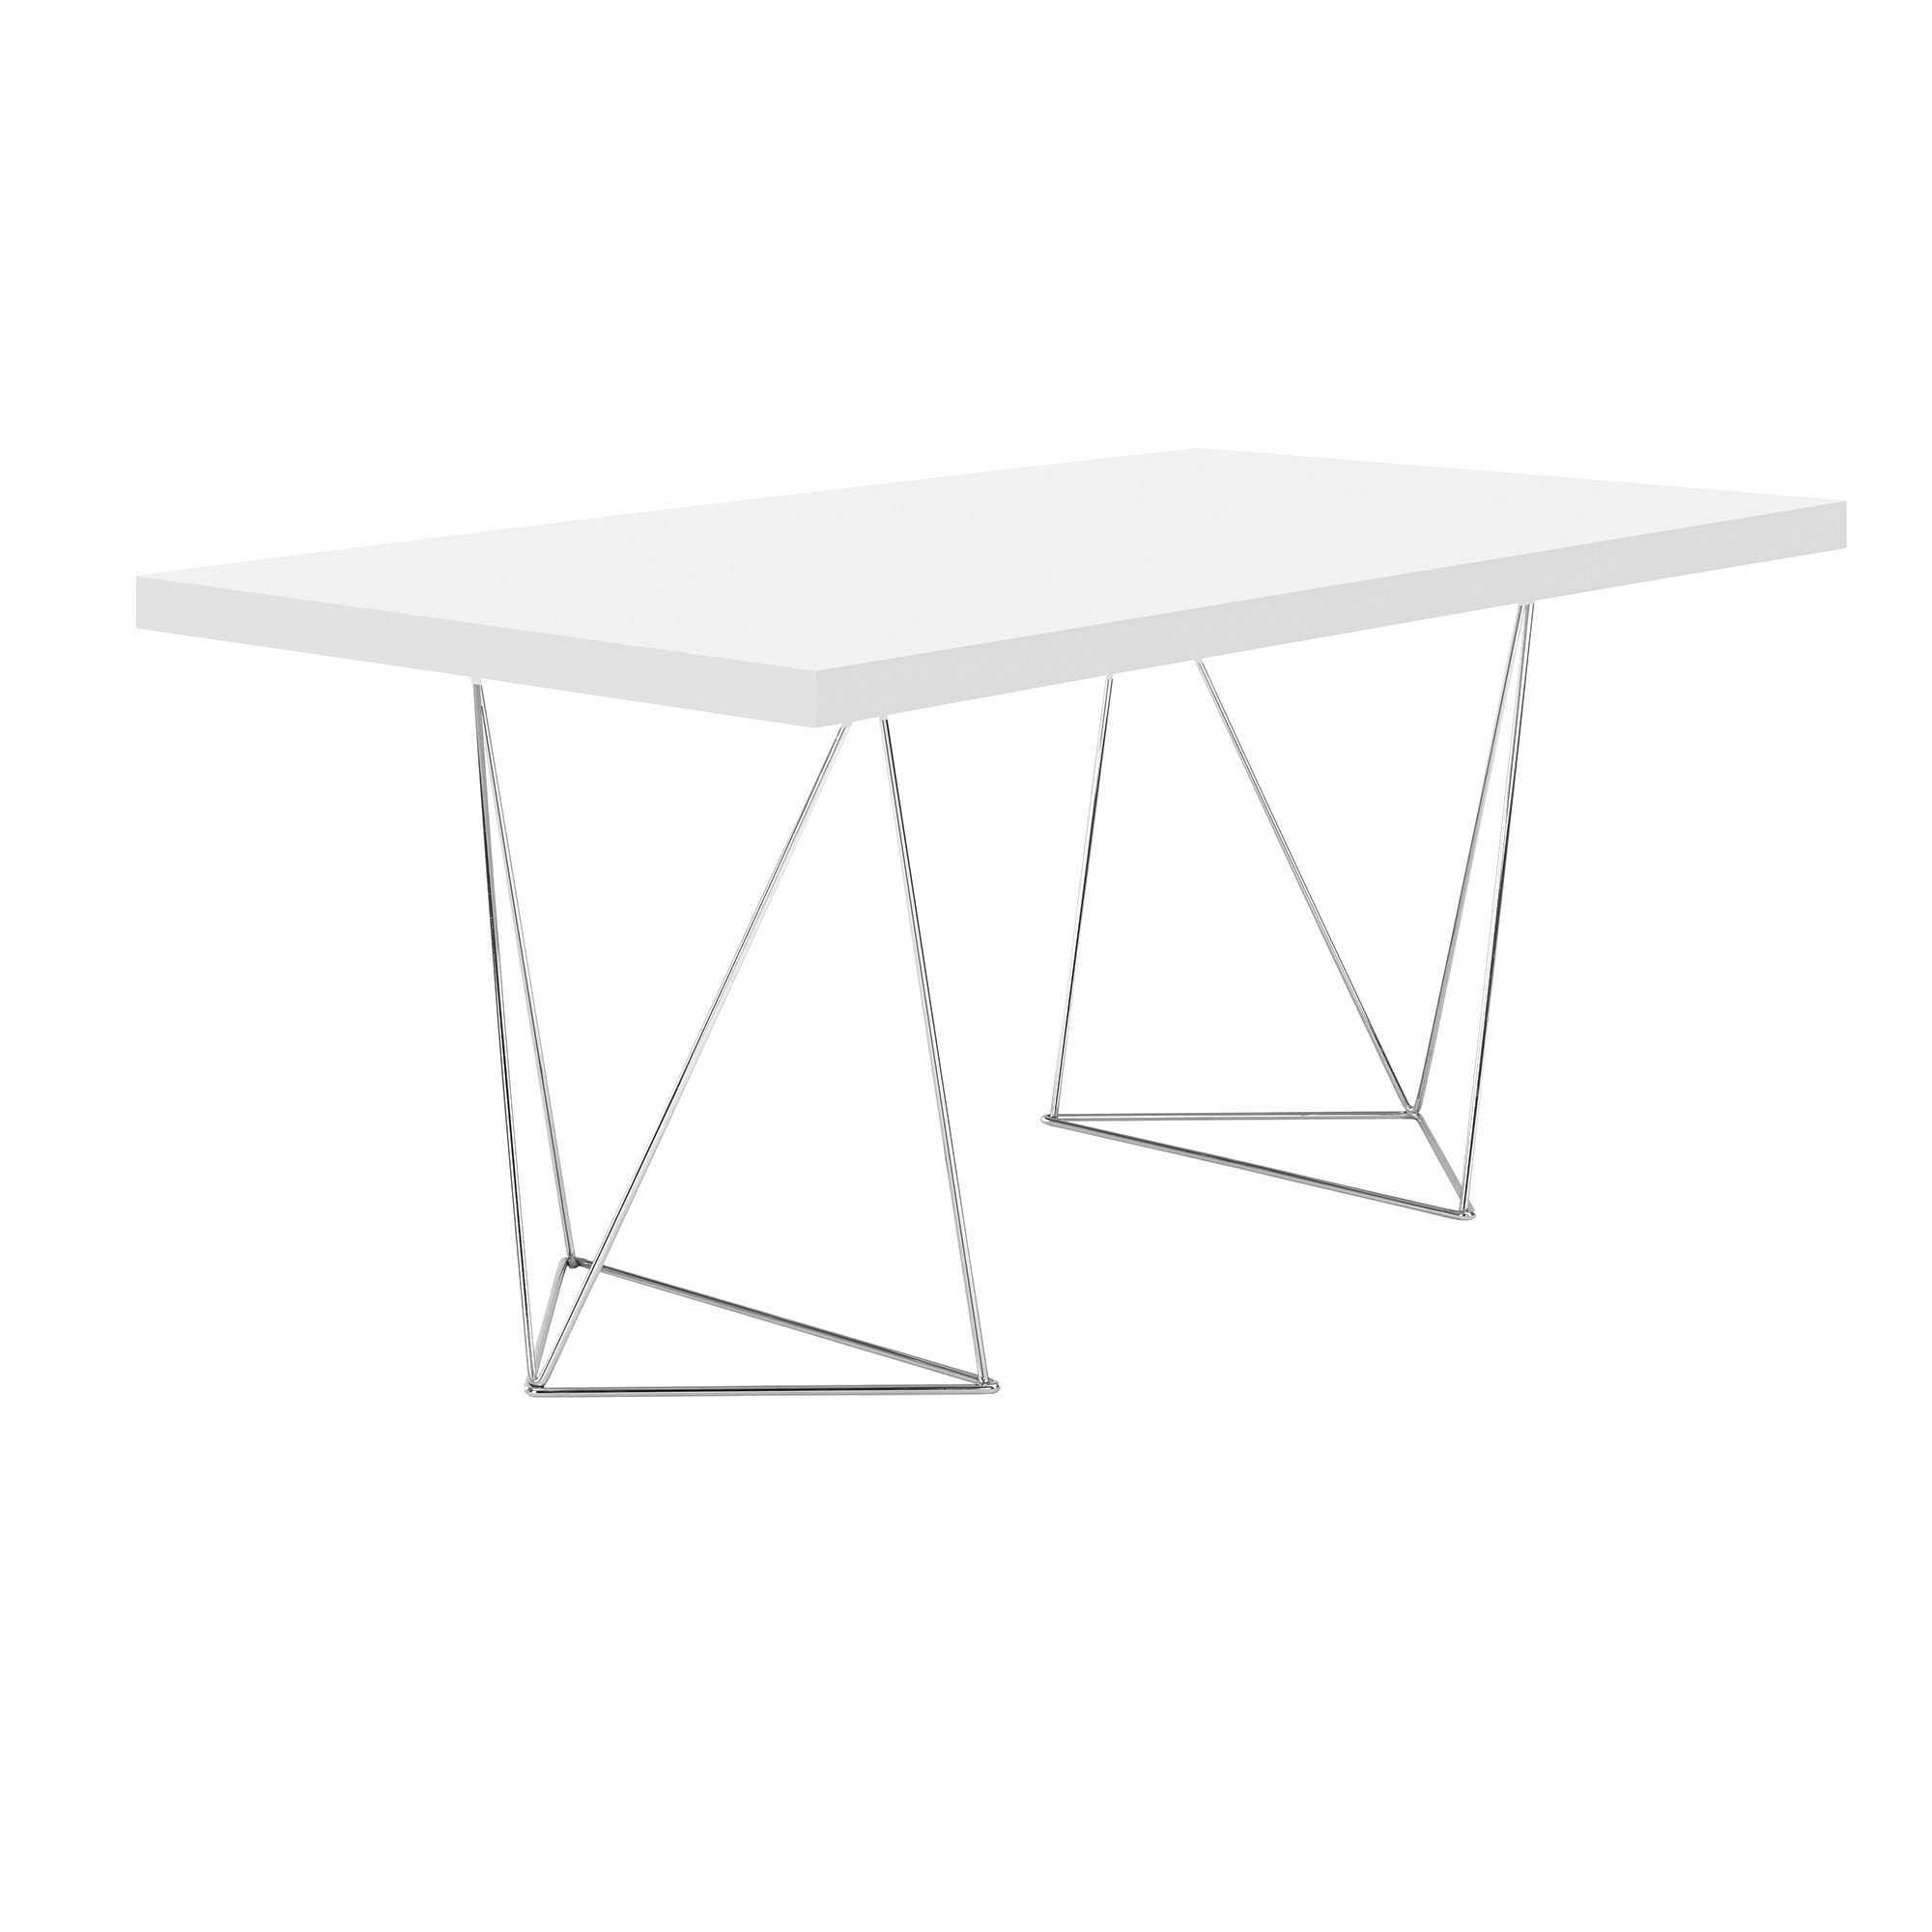 "Tema Home-Multi 71"" Table Top w/ Trestles 077040-MULTI71T-Dining Table-MODTEMPO"